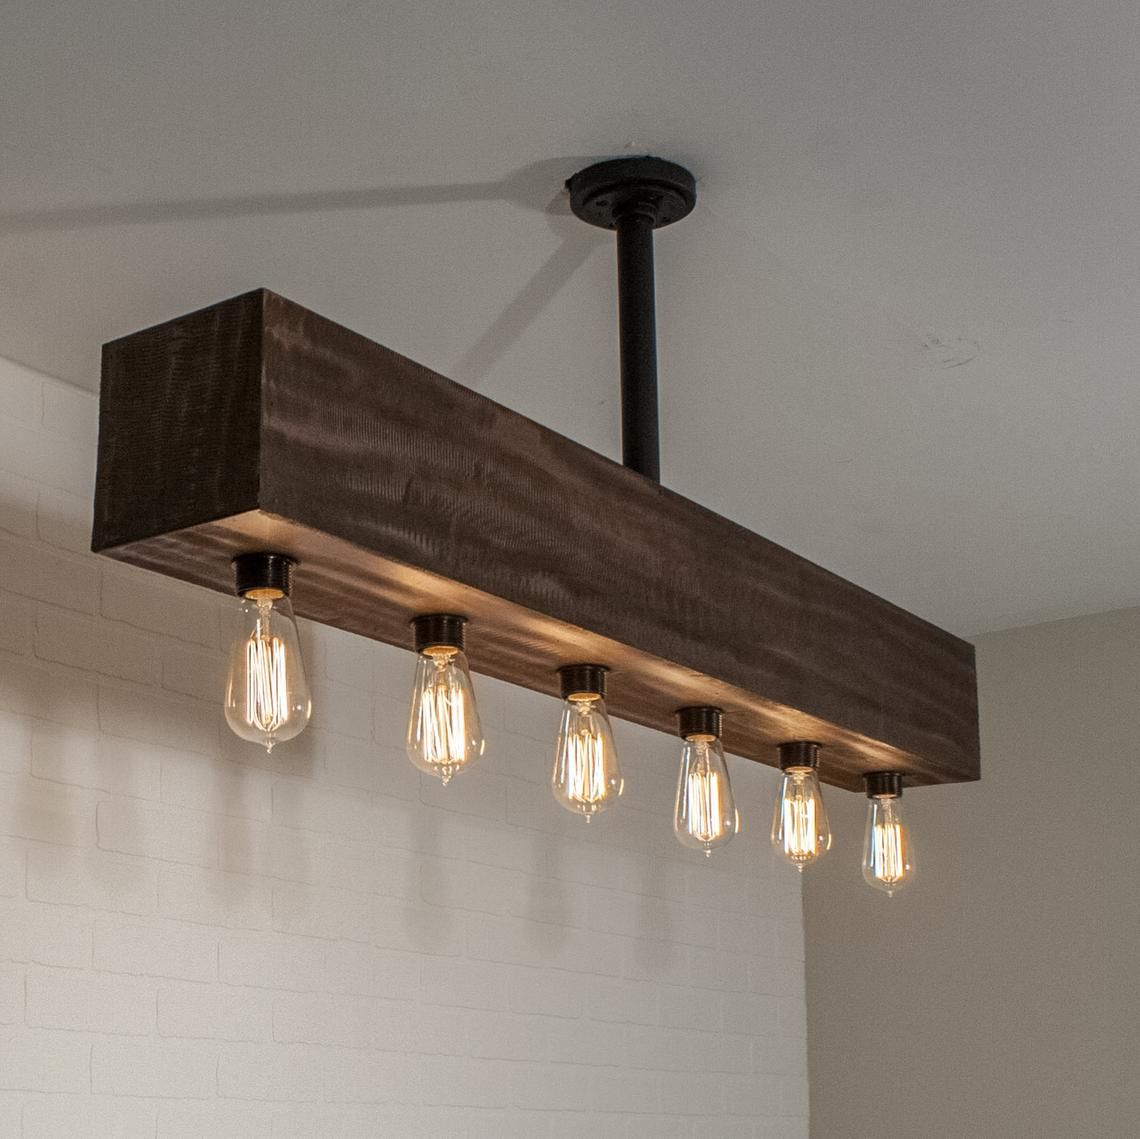 Industrial Lighting Wood Beam Light Fixture With 6 Inset Etsy